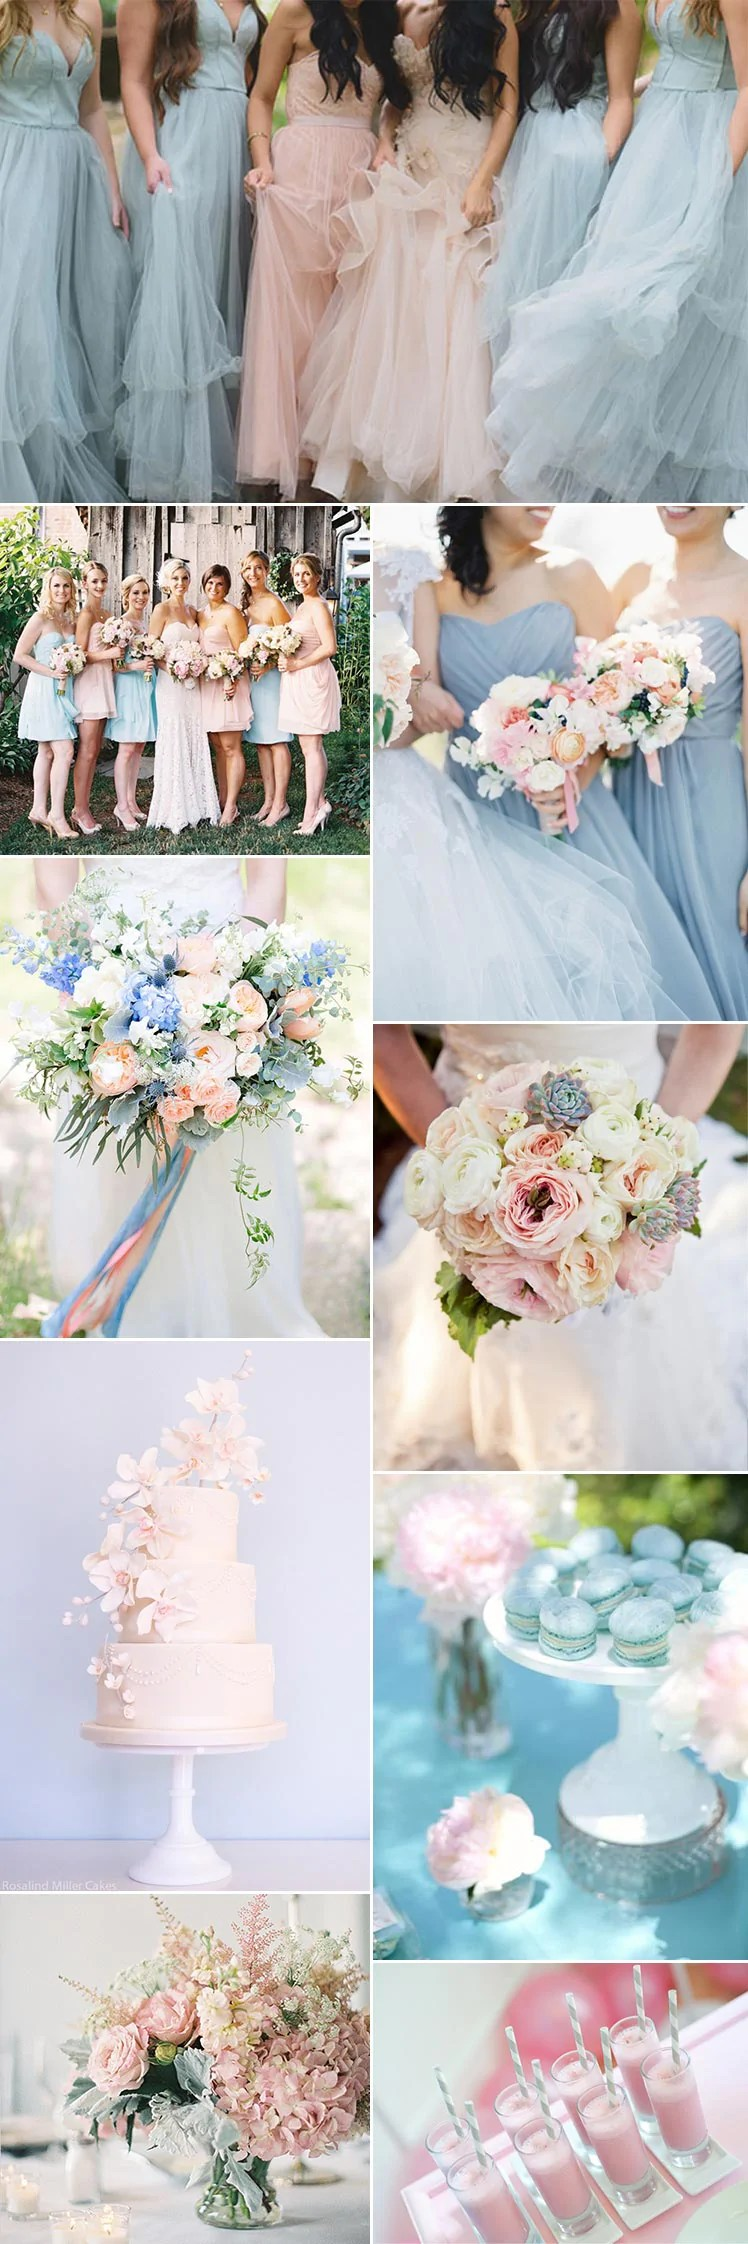 pink and blue wedding | Invitationjdi.co